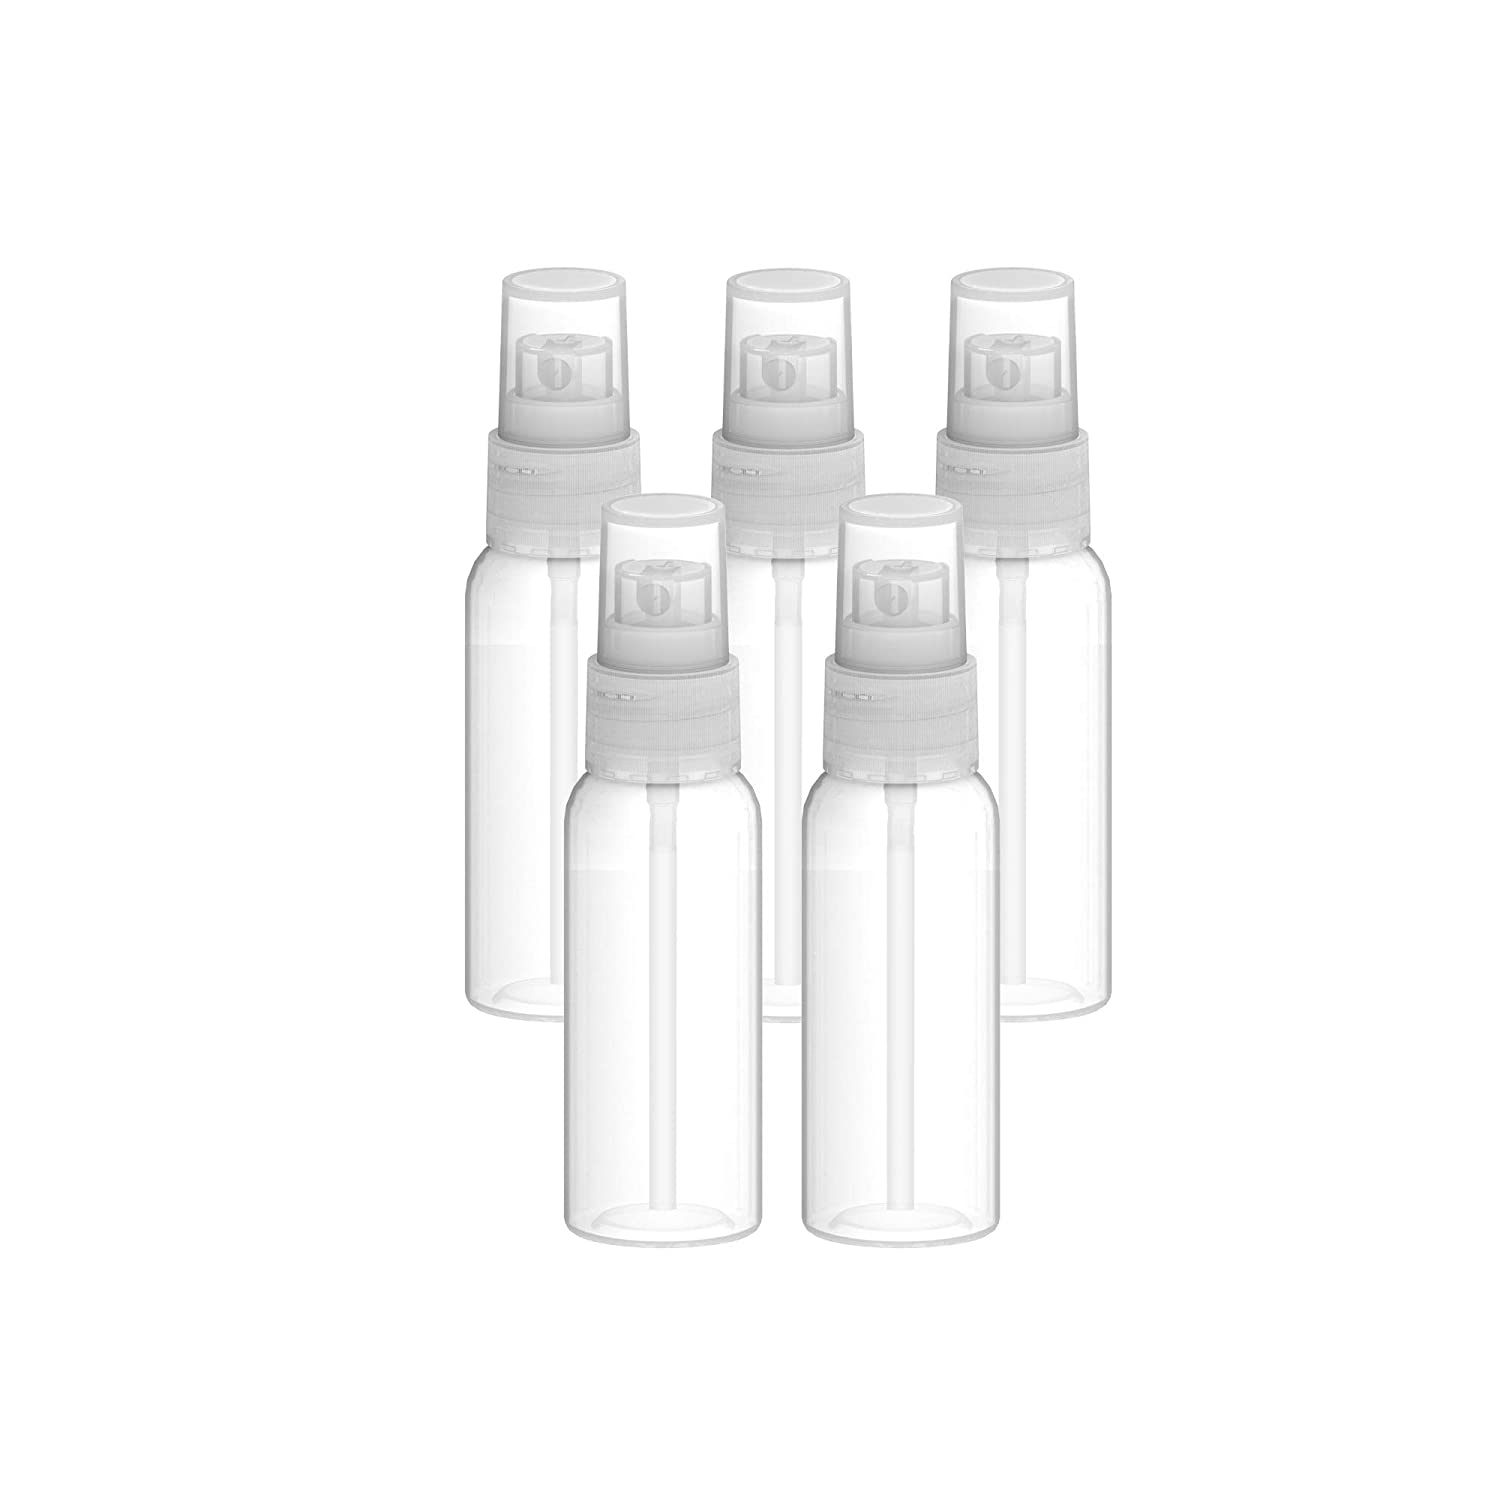 Fortitude Spray 50Ml Bottle – Transparent Small Spritzer Bottles 1.7 Oz – Premium Food Grade (LDPE) Refillable Bottle – Travel Friendly – Ideal for Cosmetics, Perfume, Essential Oils (10-Pack)